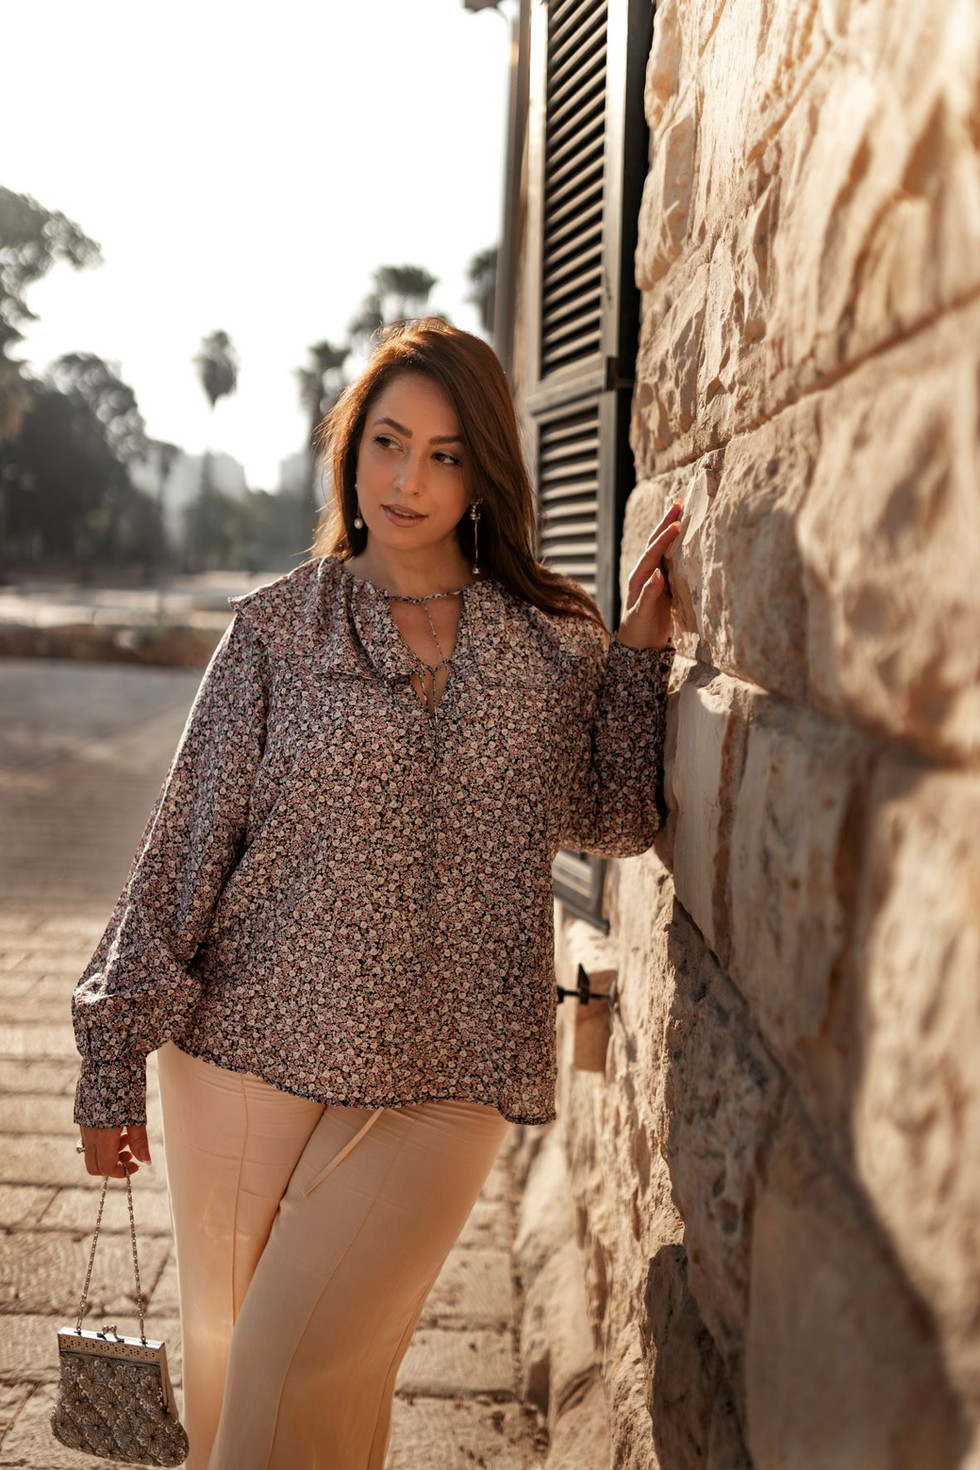 H&M Israel collab -  ONE suit SIX days